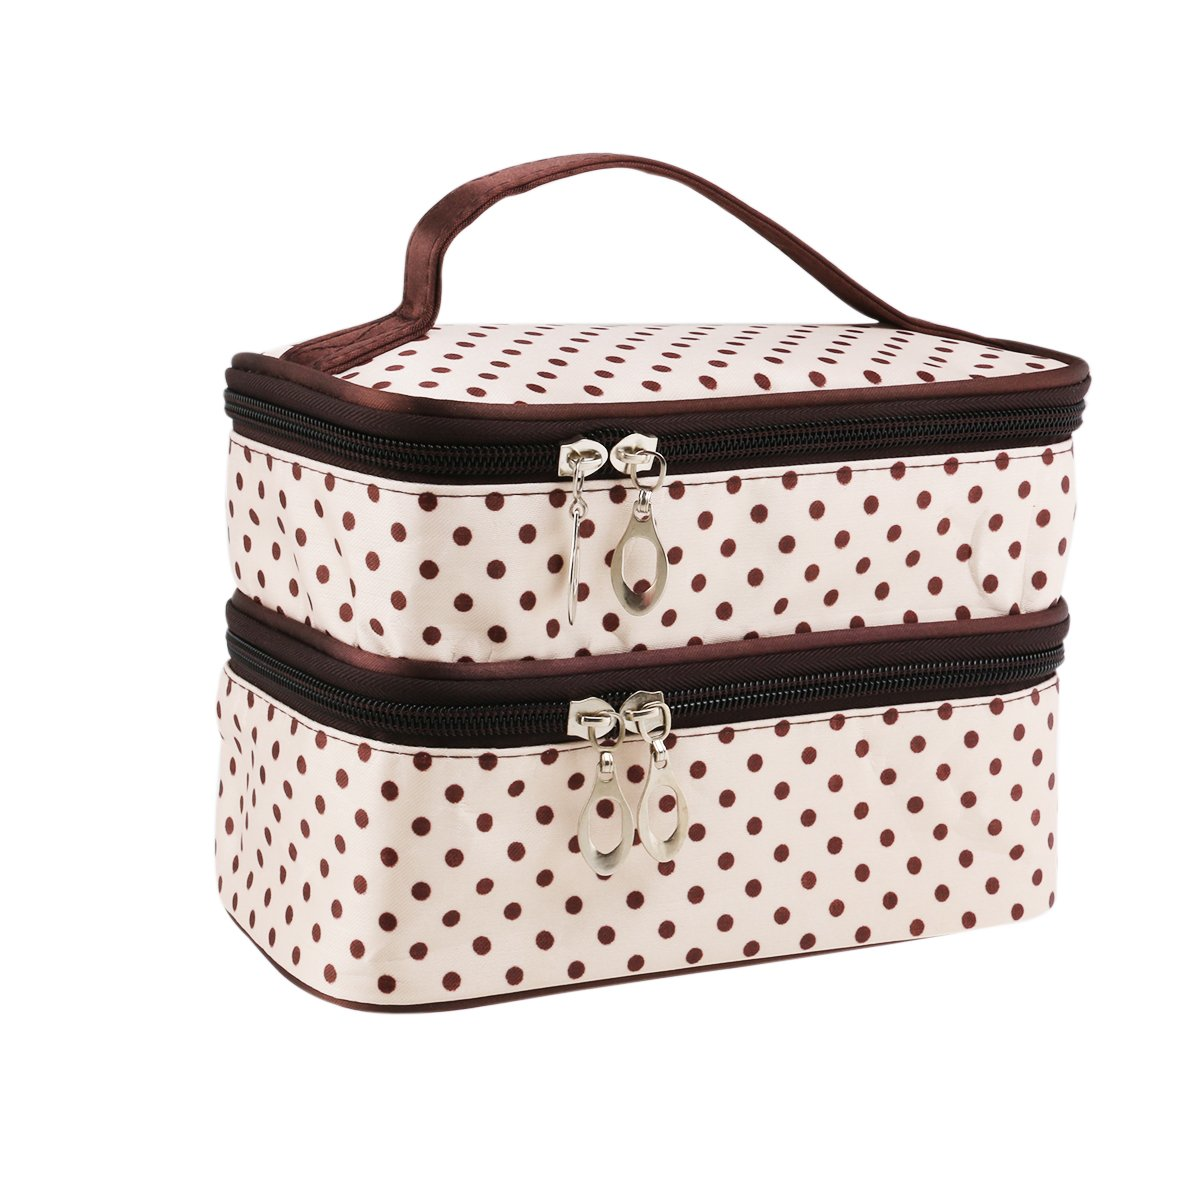 UEETEK Women Cosmetic Makeup Bag Double Layer Polka Dot Pattern Toiletry Pouch Organizer with Hand Strap for Travelling Beige